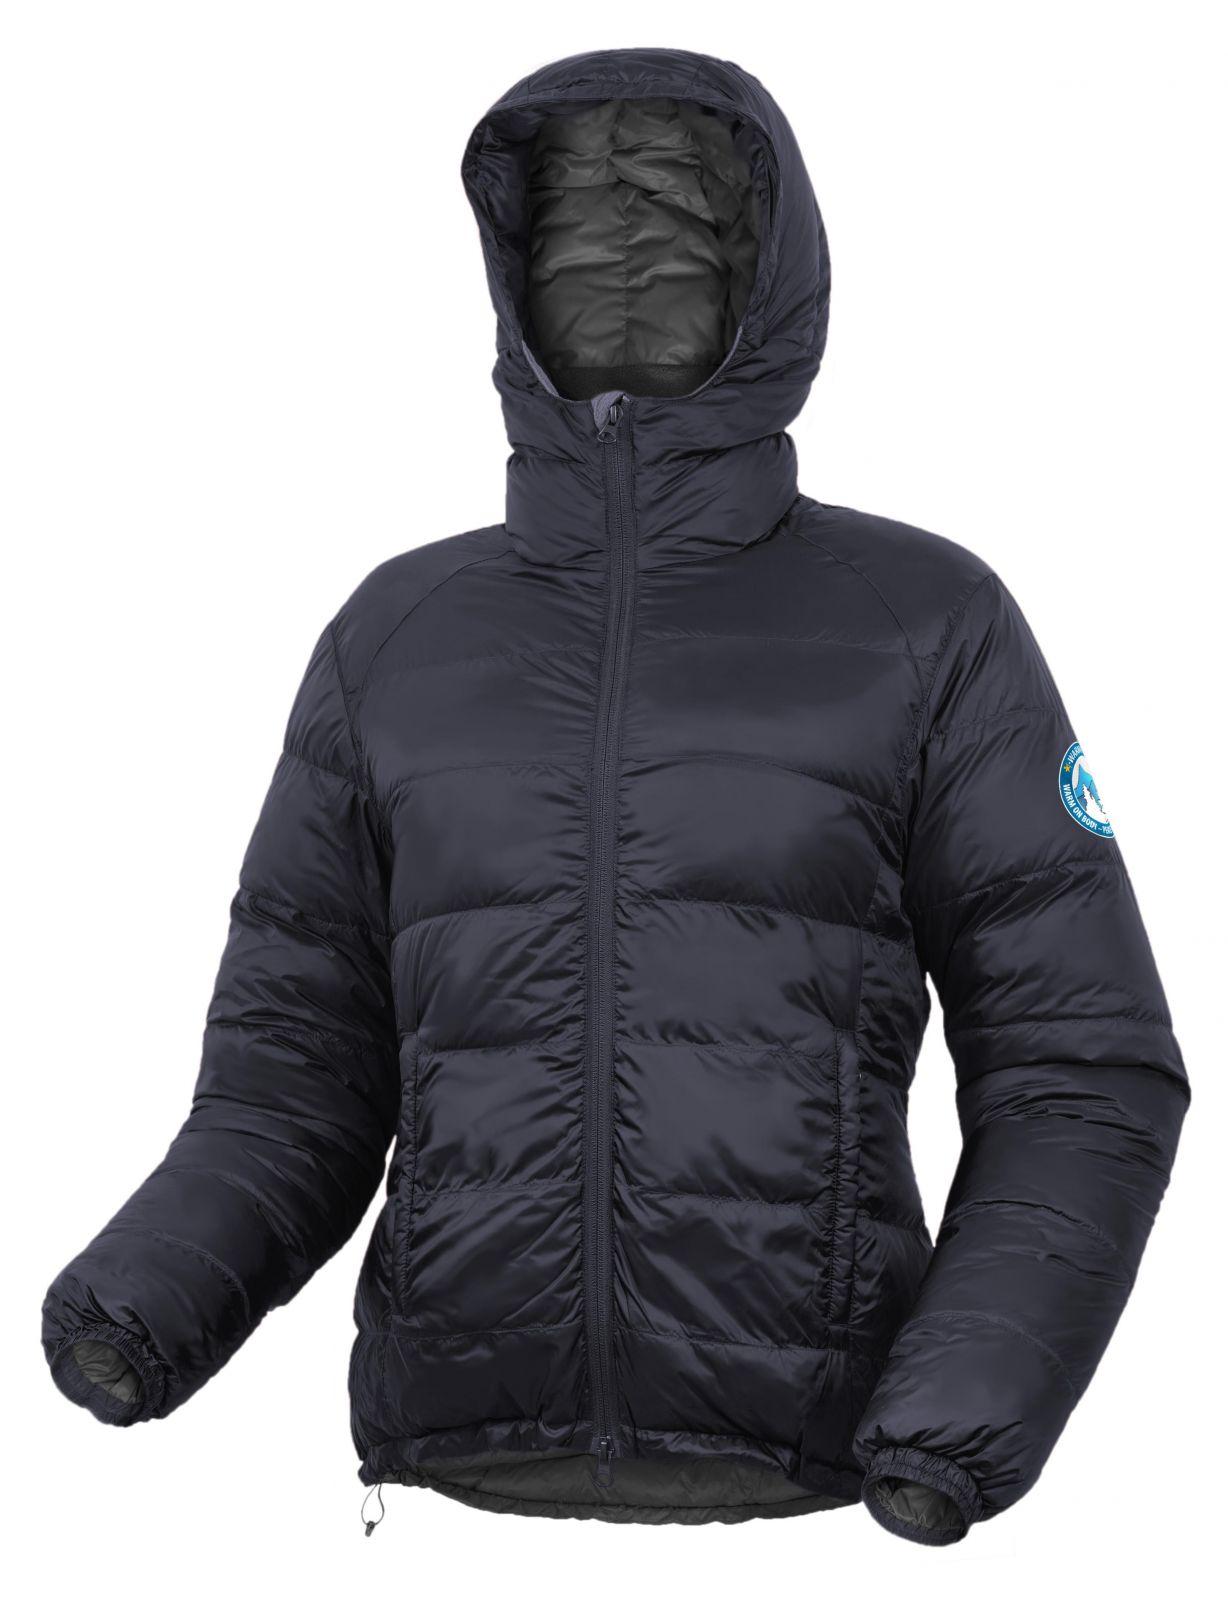 Tazz-Sport - Warmpeace Sierra lady black